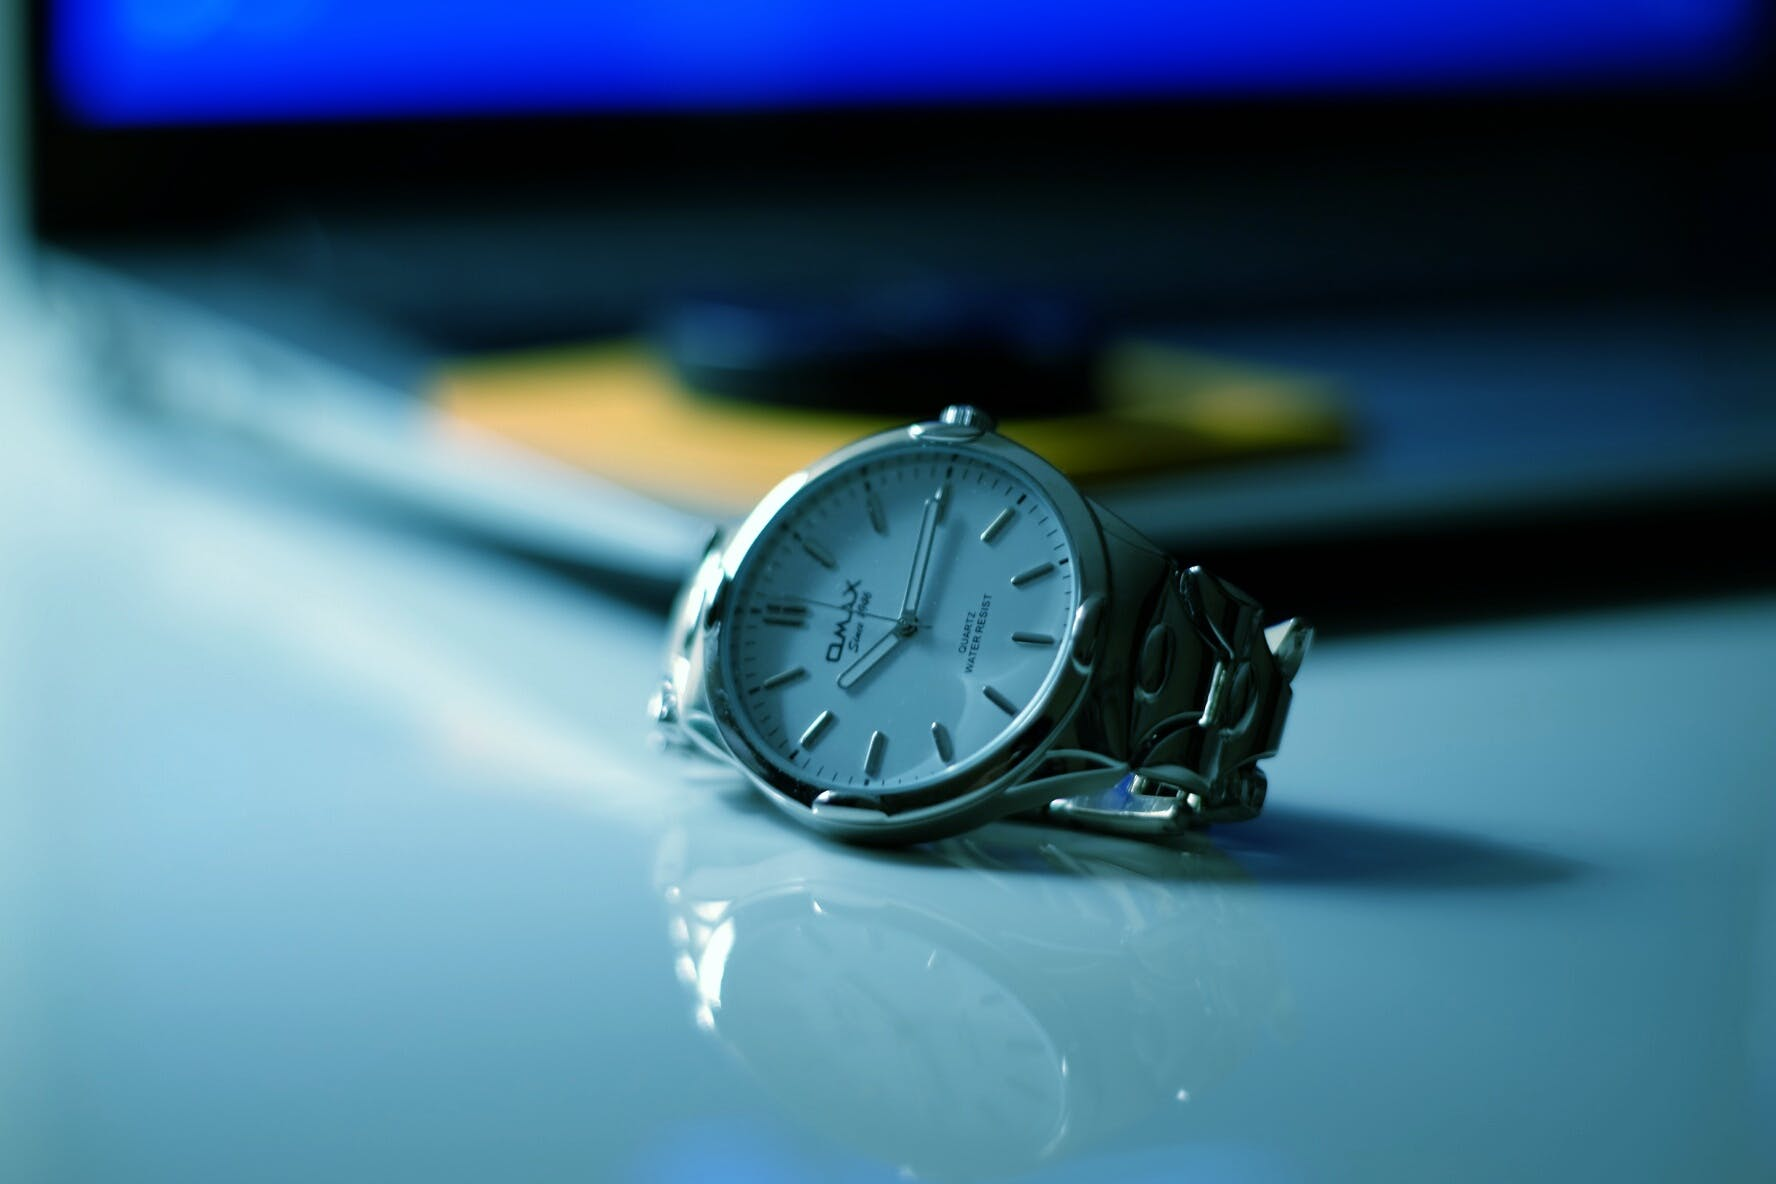 Free stock photo of time